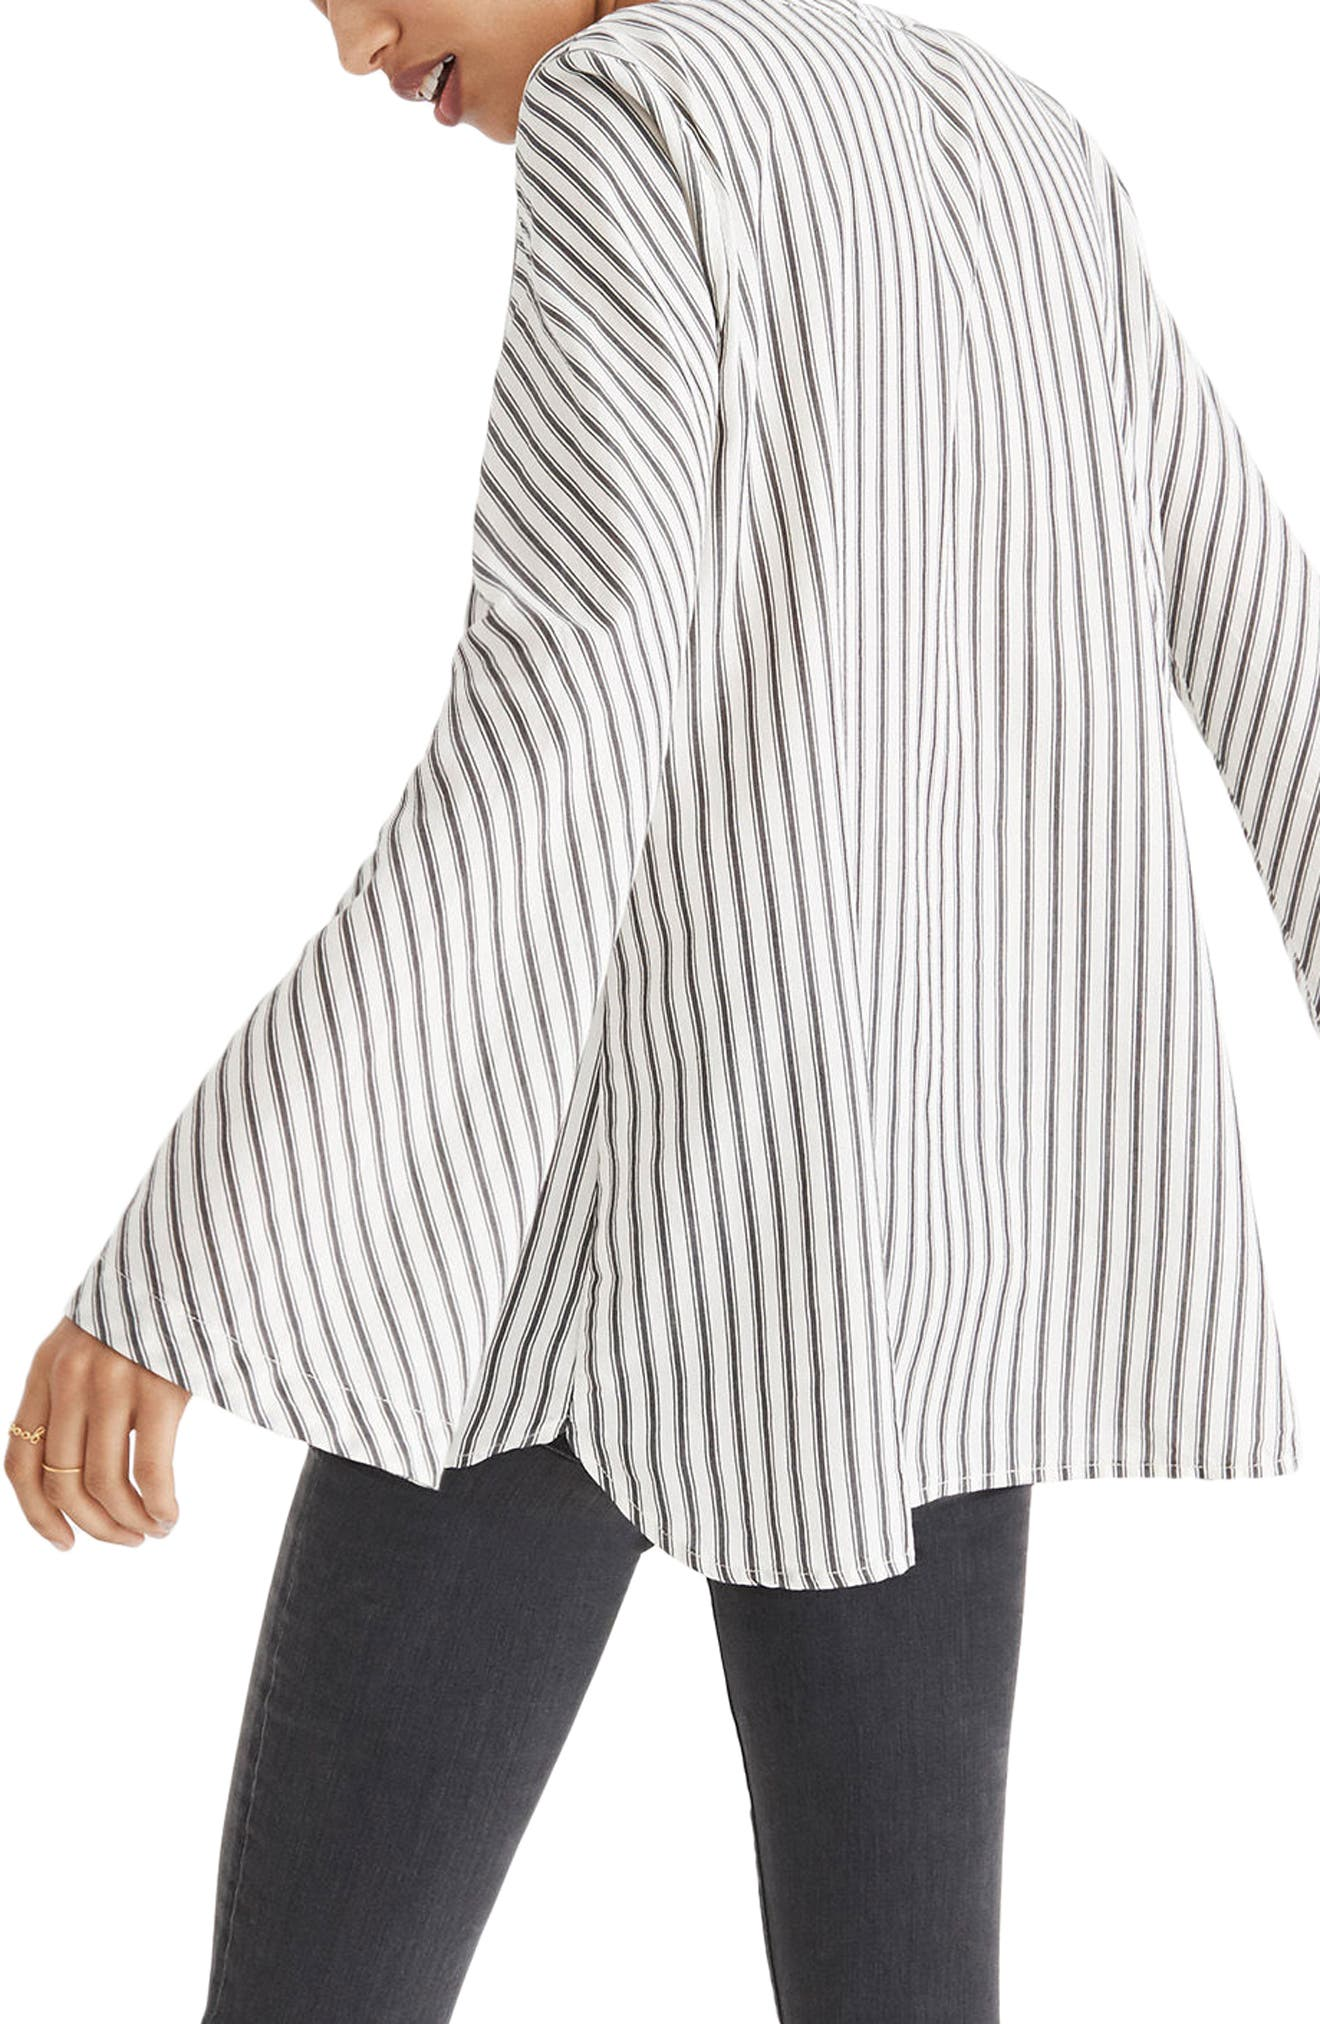 Stripe Flare Sleeve Shirt,                             Alternate thumbnail 2, color,                             Brighton Stripe White Wash